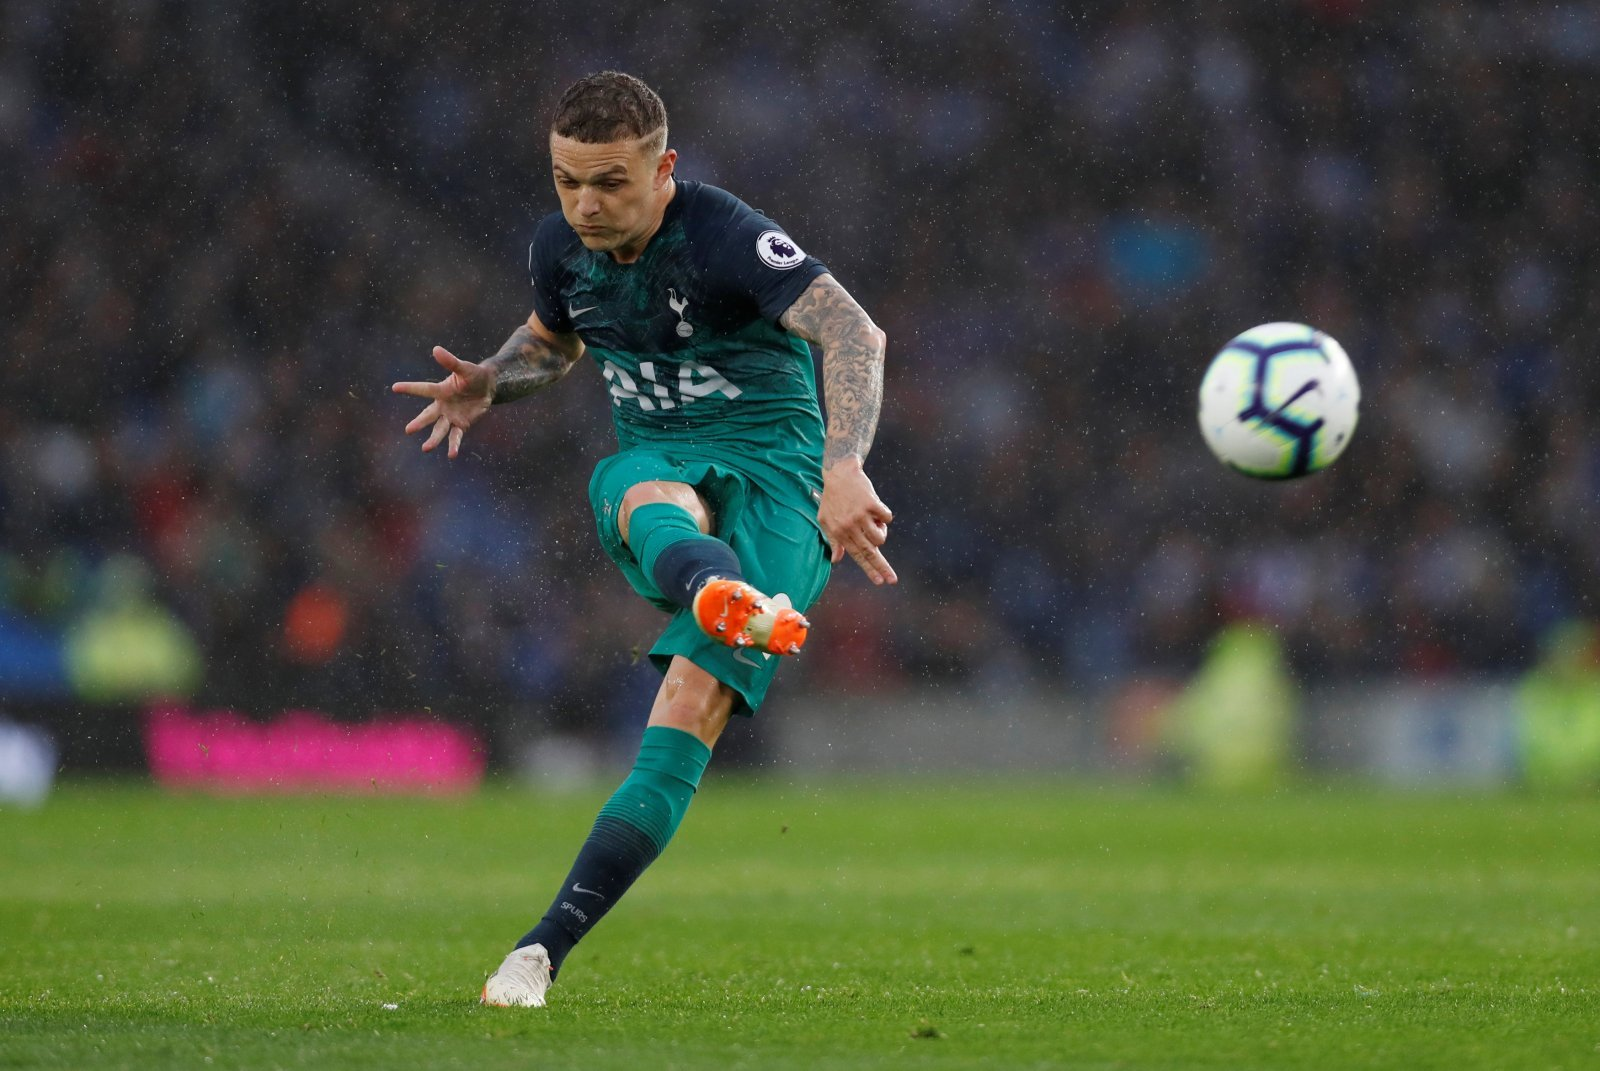 58% of Spurs fans think Kieran Trippier is better than Kyle Walker